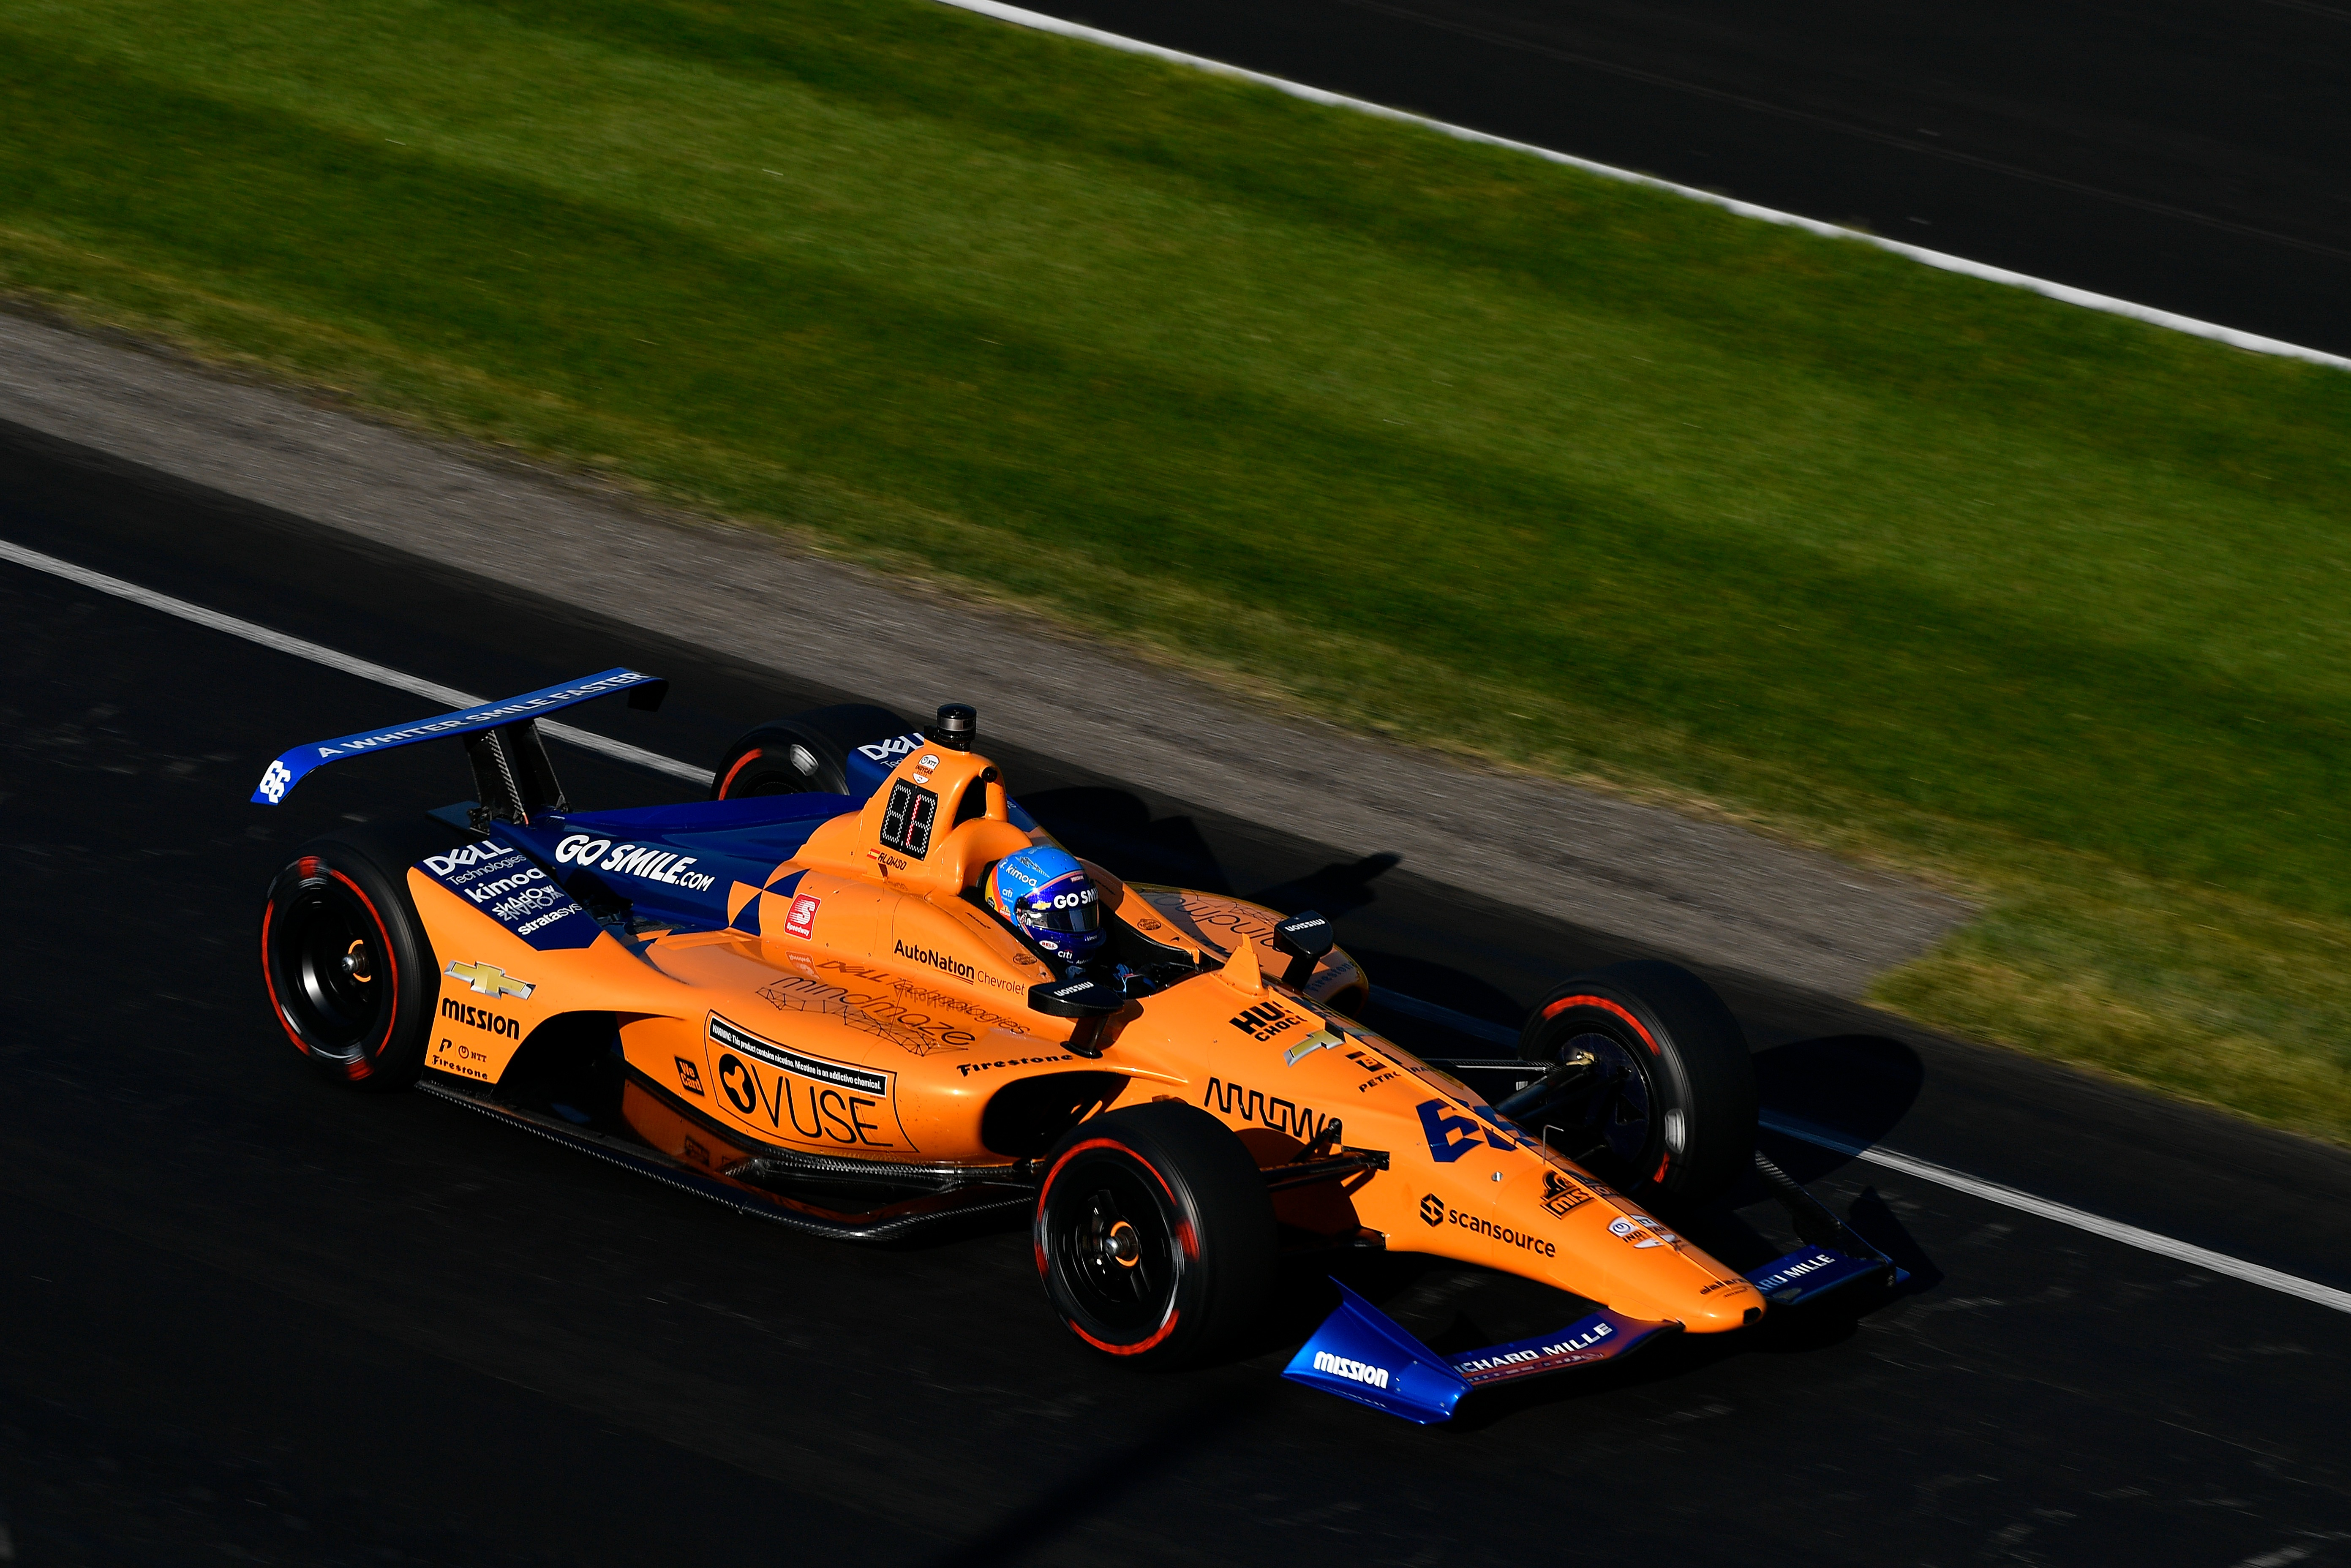 Fernando Alonso failed to qualify for 2019 Indy 500 with McLaren